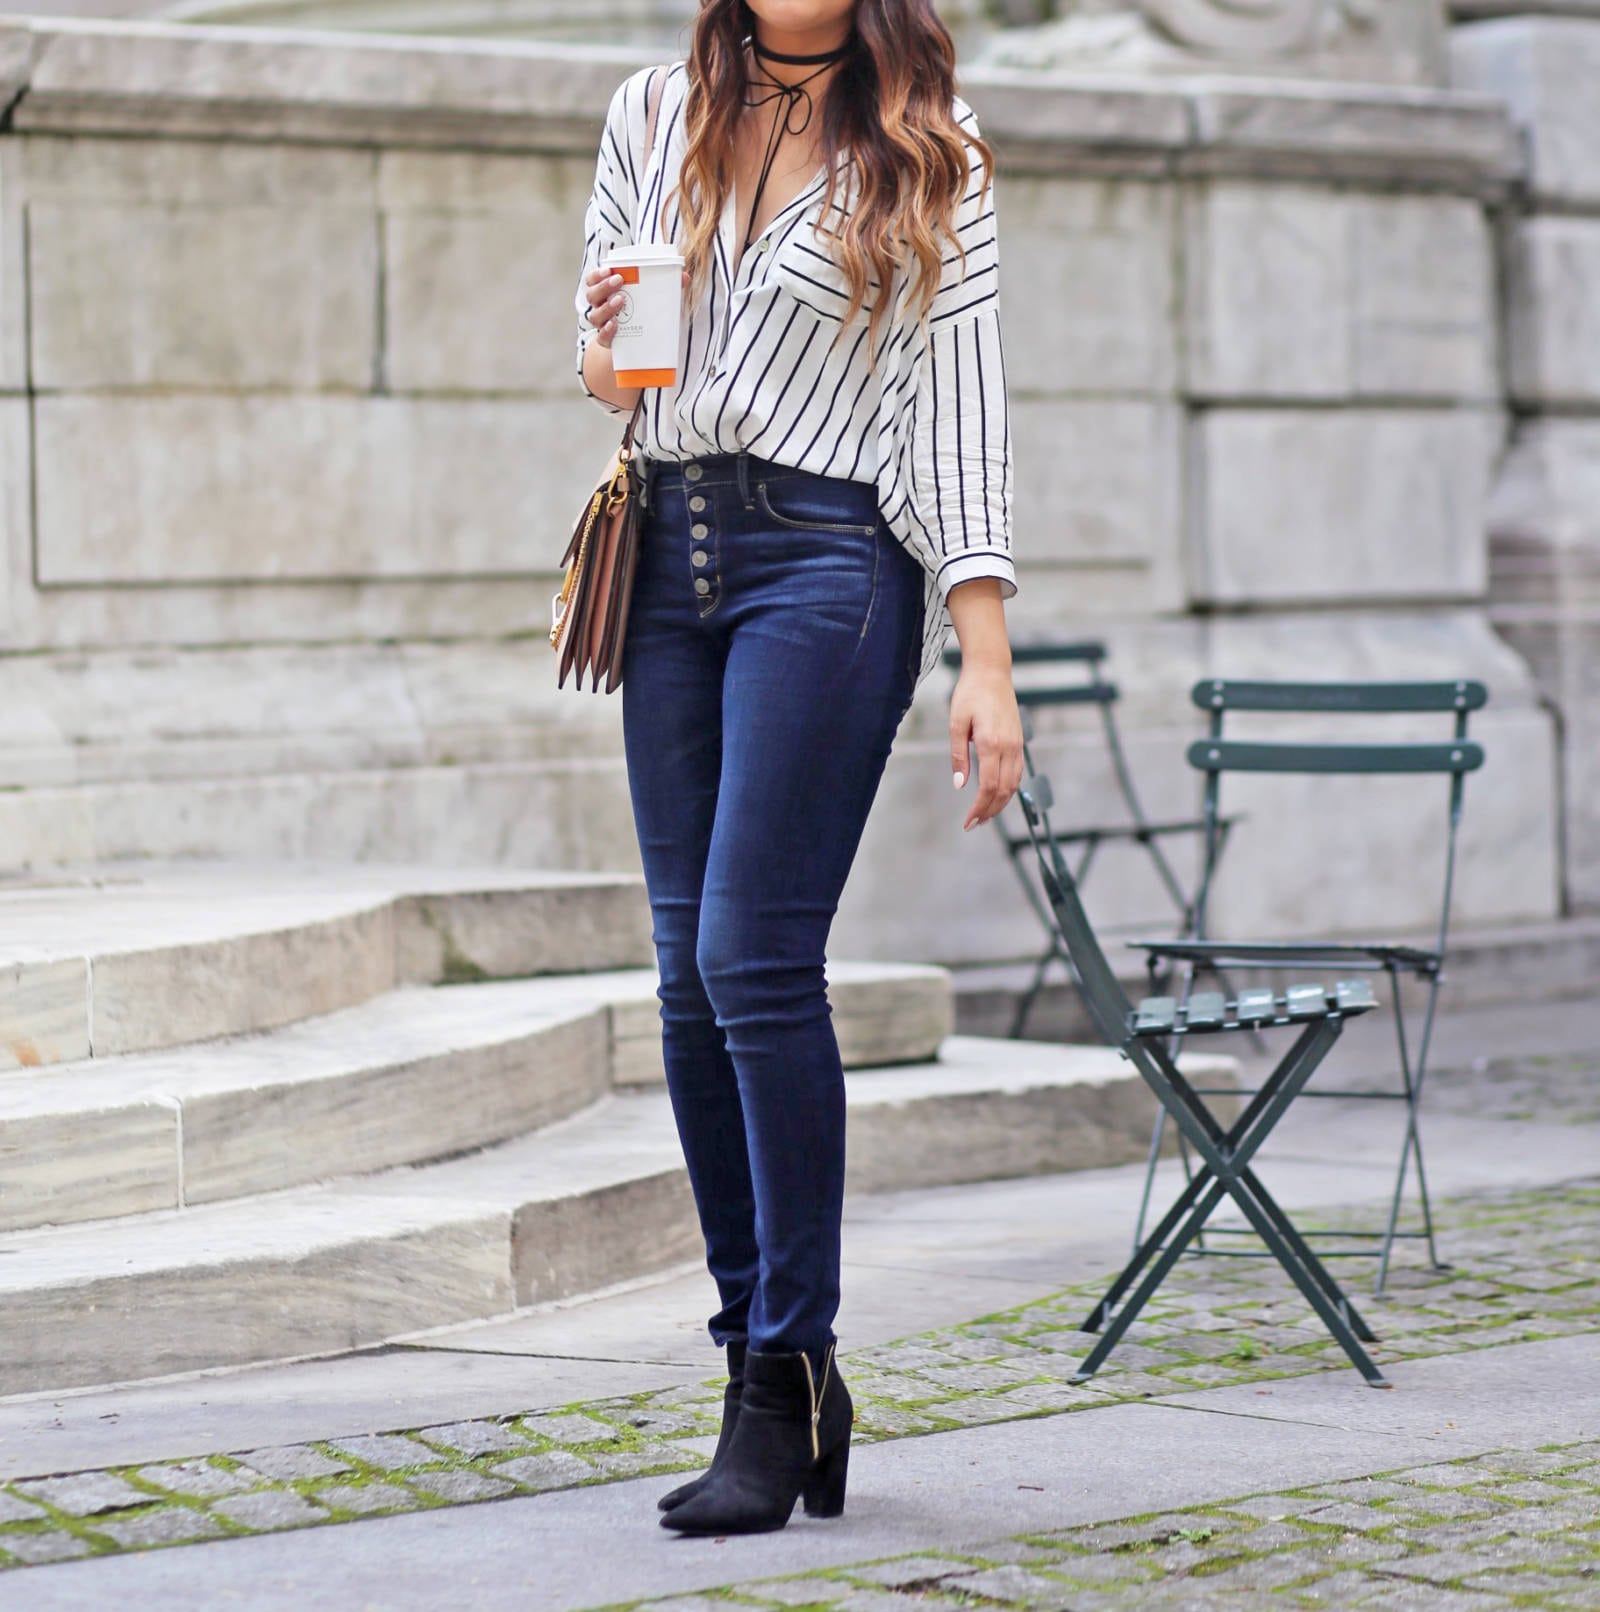 Mash Elle beauty and style blogger |  high waisted jeans | New York City stripe shirt | woven shirt | NYC | jeans outfit